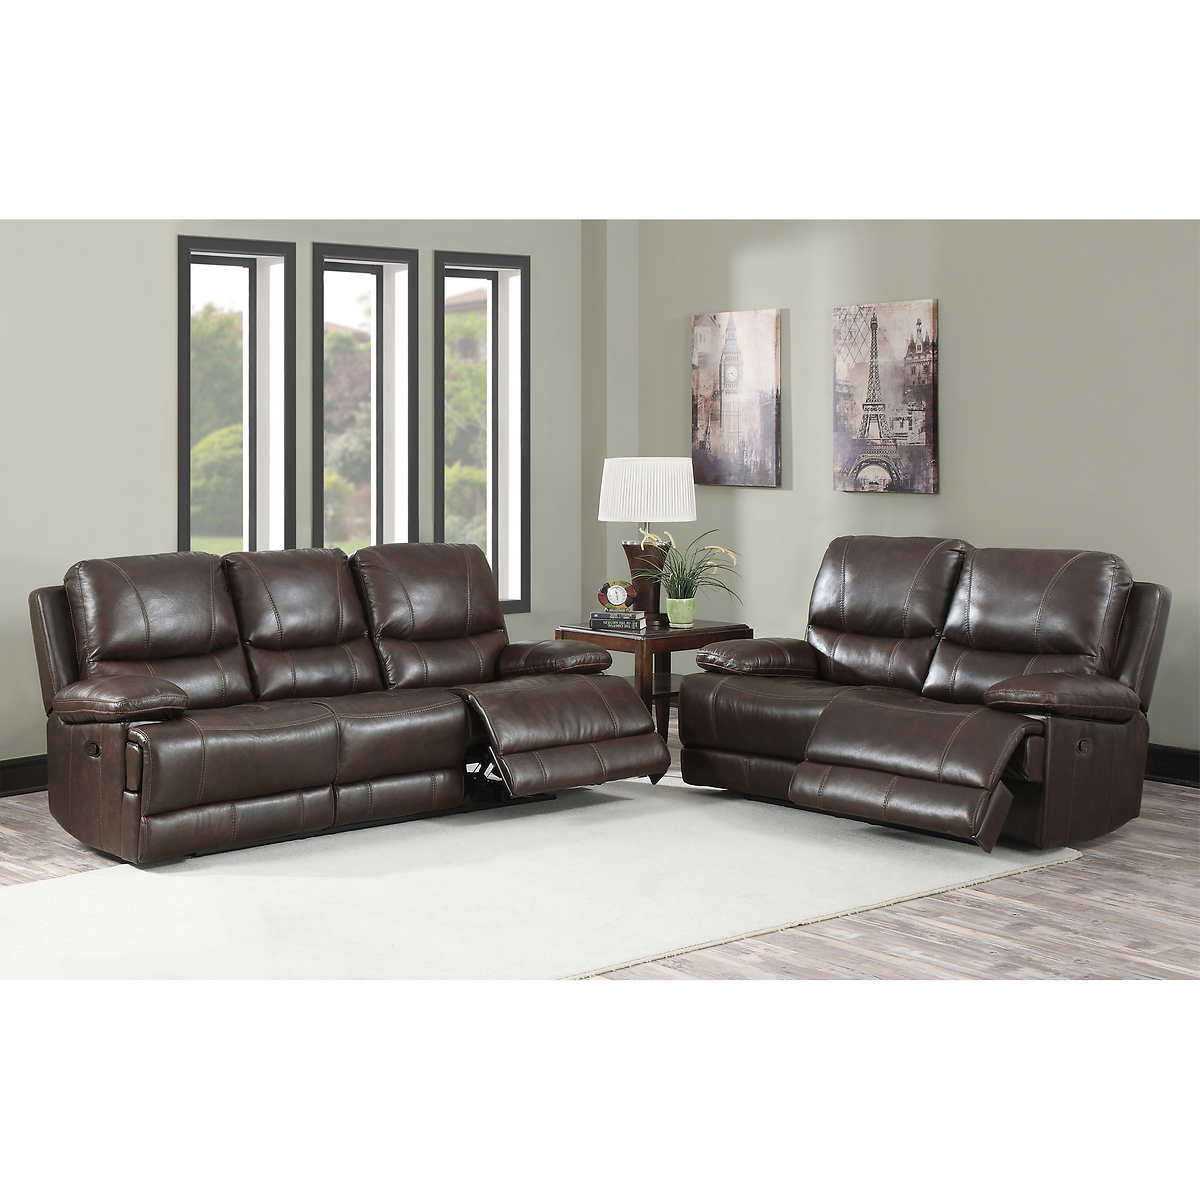 Maren 2-Piece Top Grain Leather Reclining Set